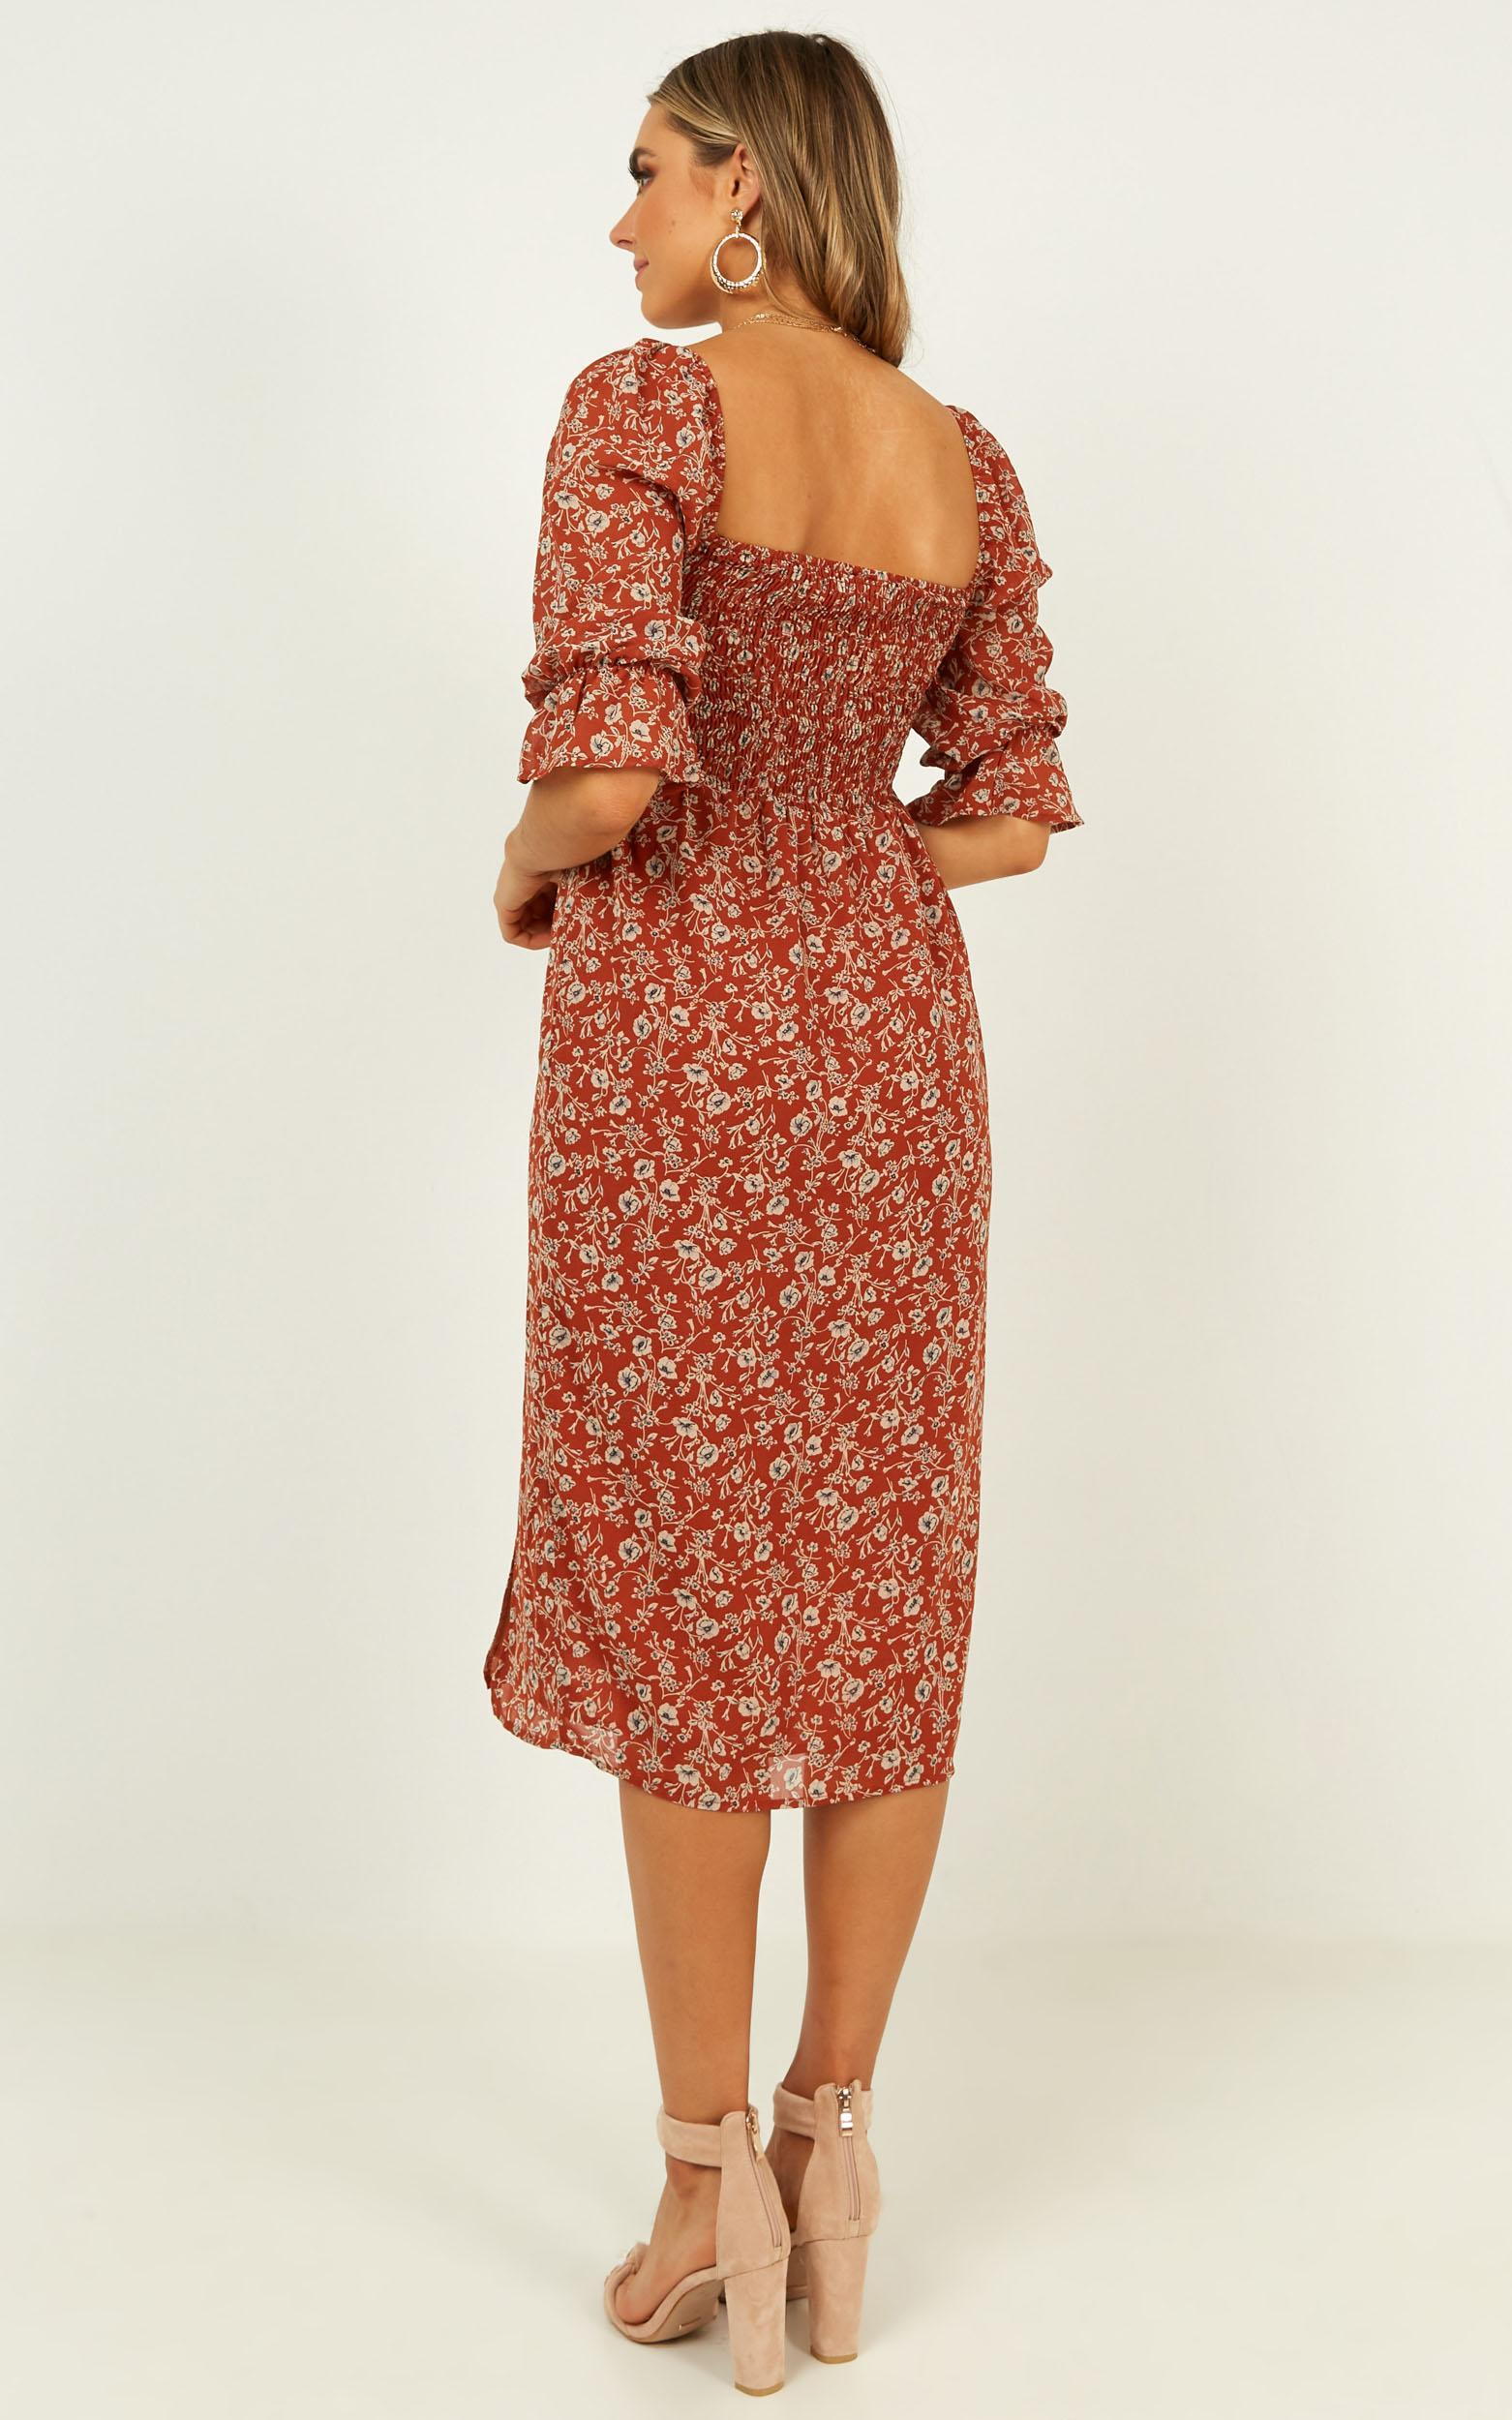 Silence Dress in rust floral - 20 (XXXXL), Rust, hi-res image number null